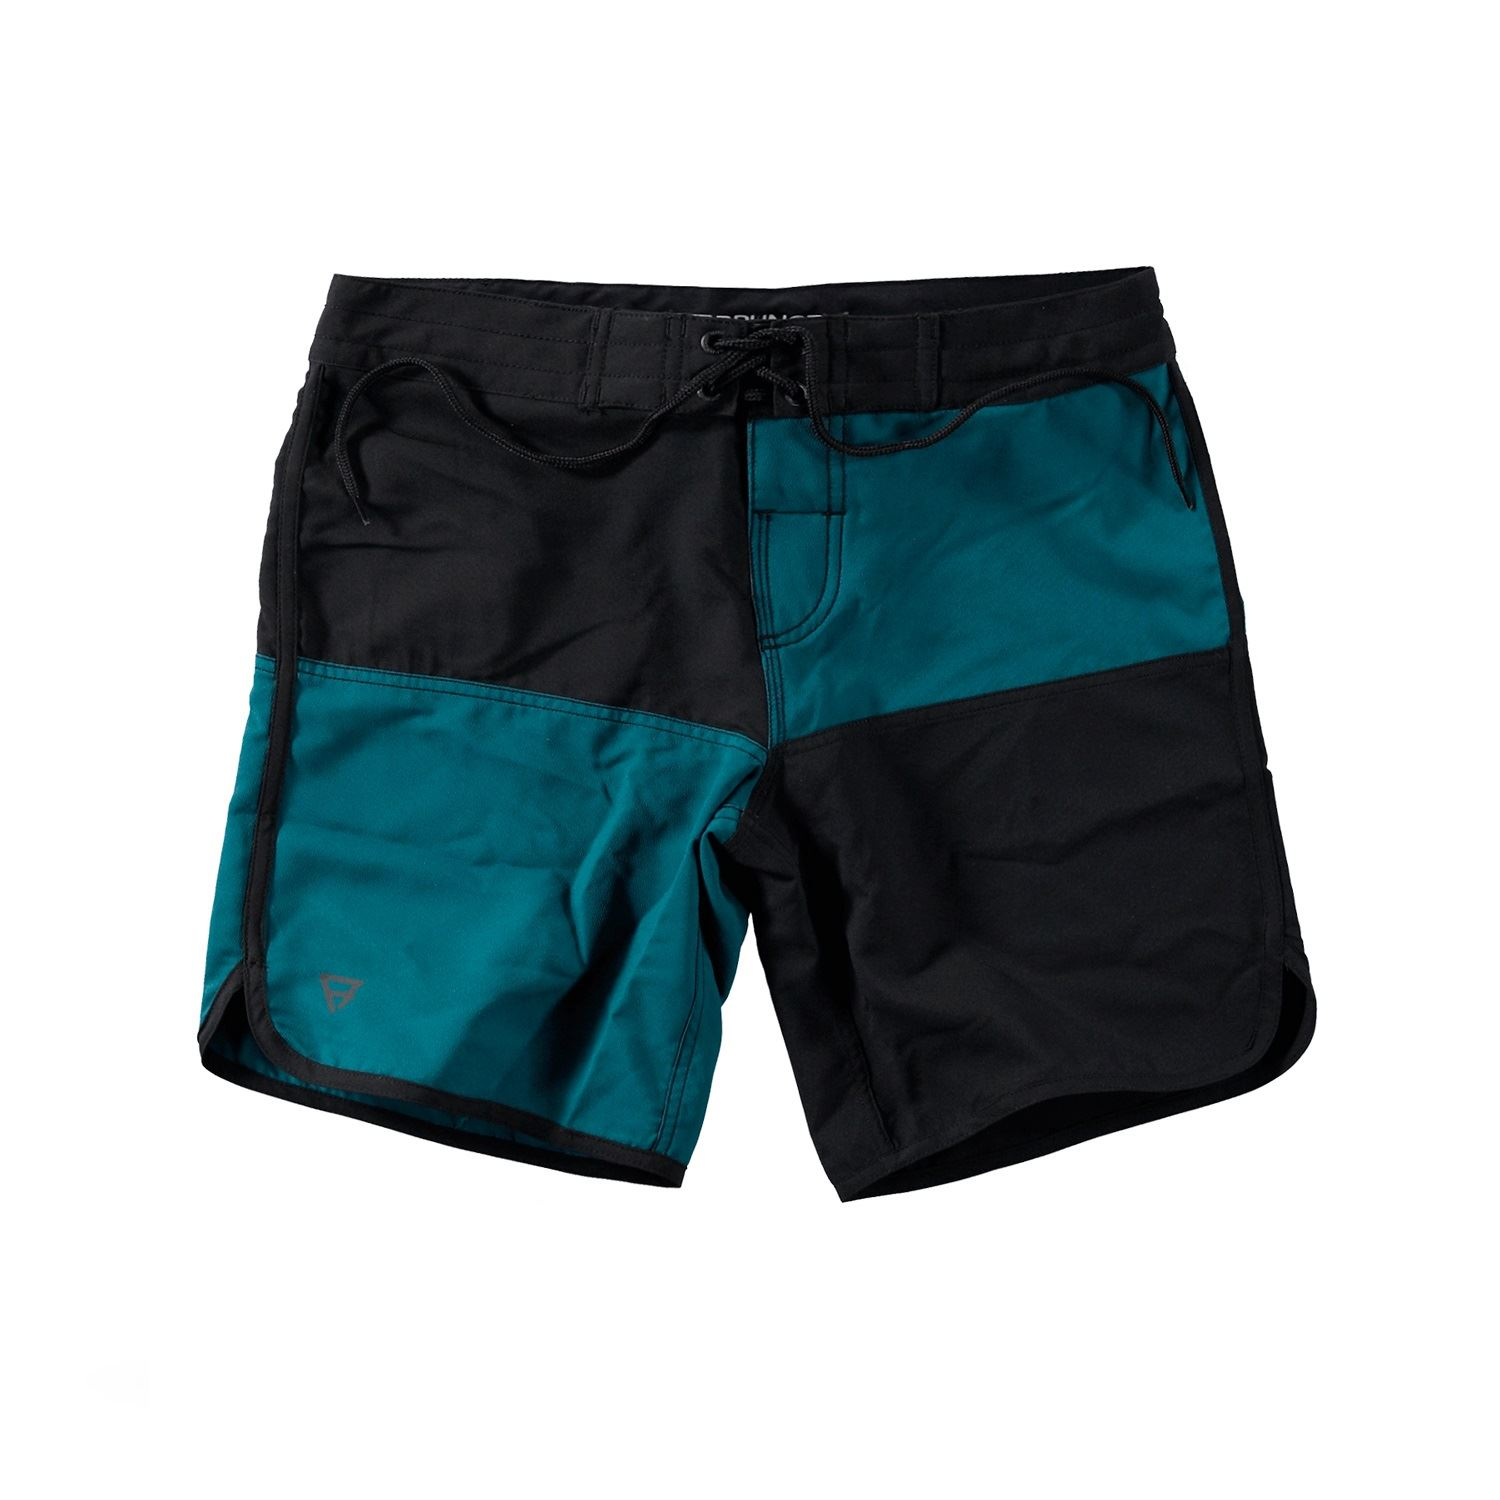 Image of Brunotti 18Inch Boardshort Men Short